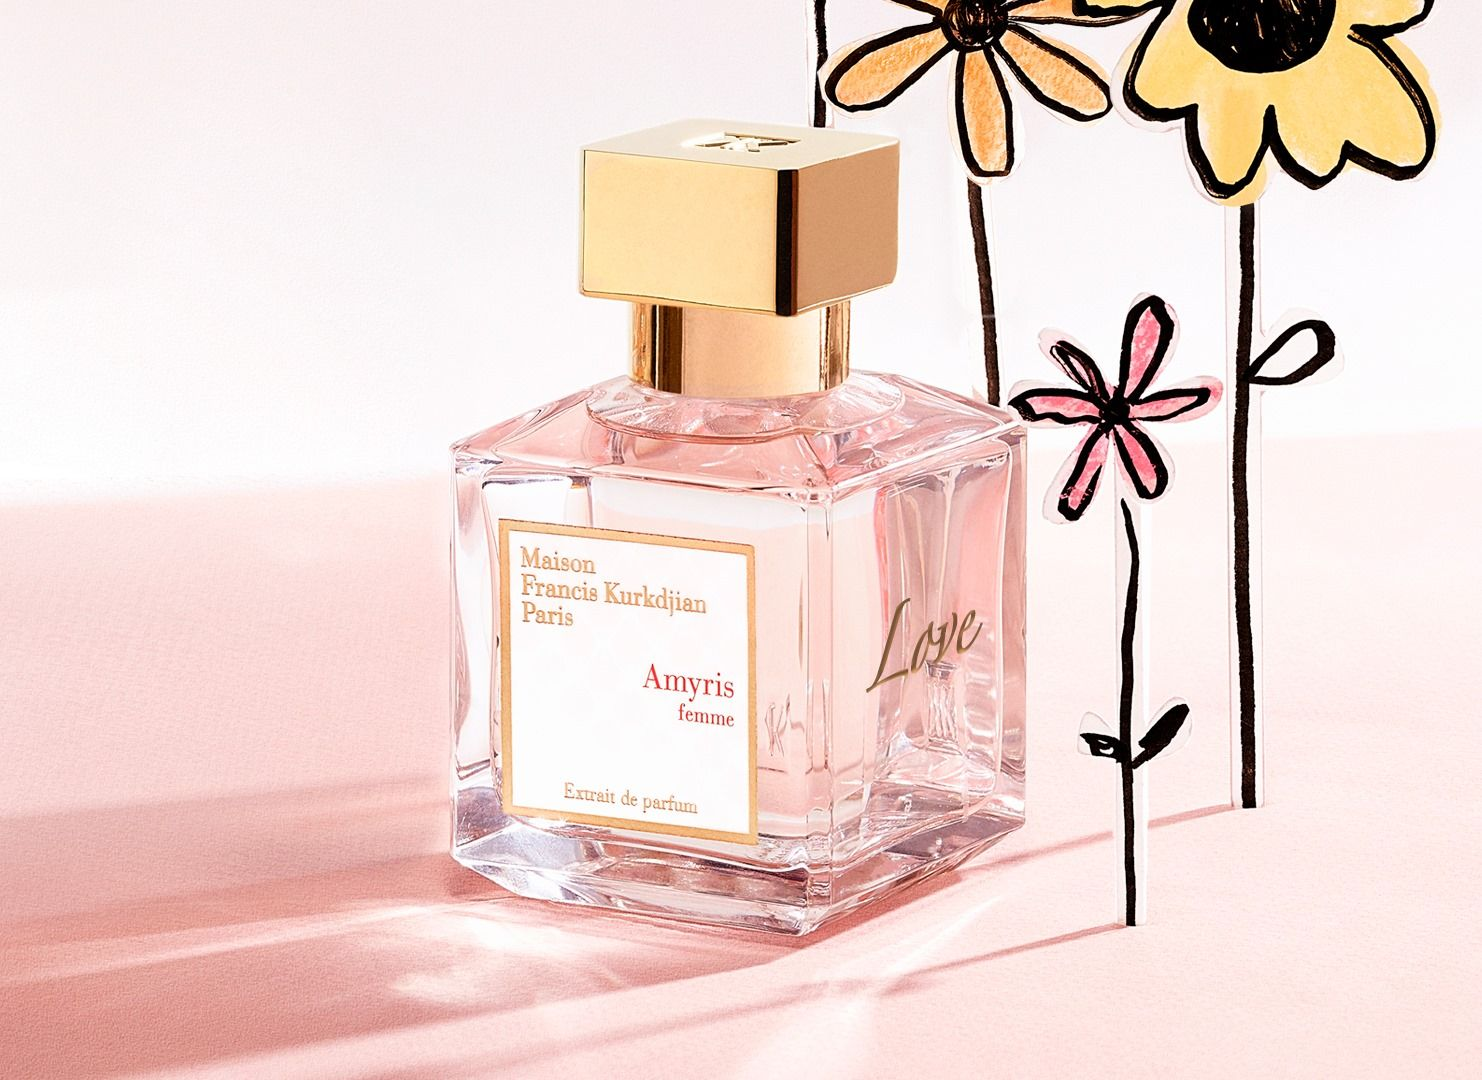 Mother's Day 2021: 7 Fragrances To Fete Your Mum This Month: From Chanel To Louis Vuitton